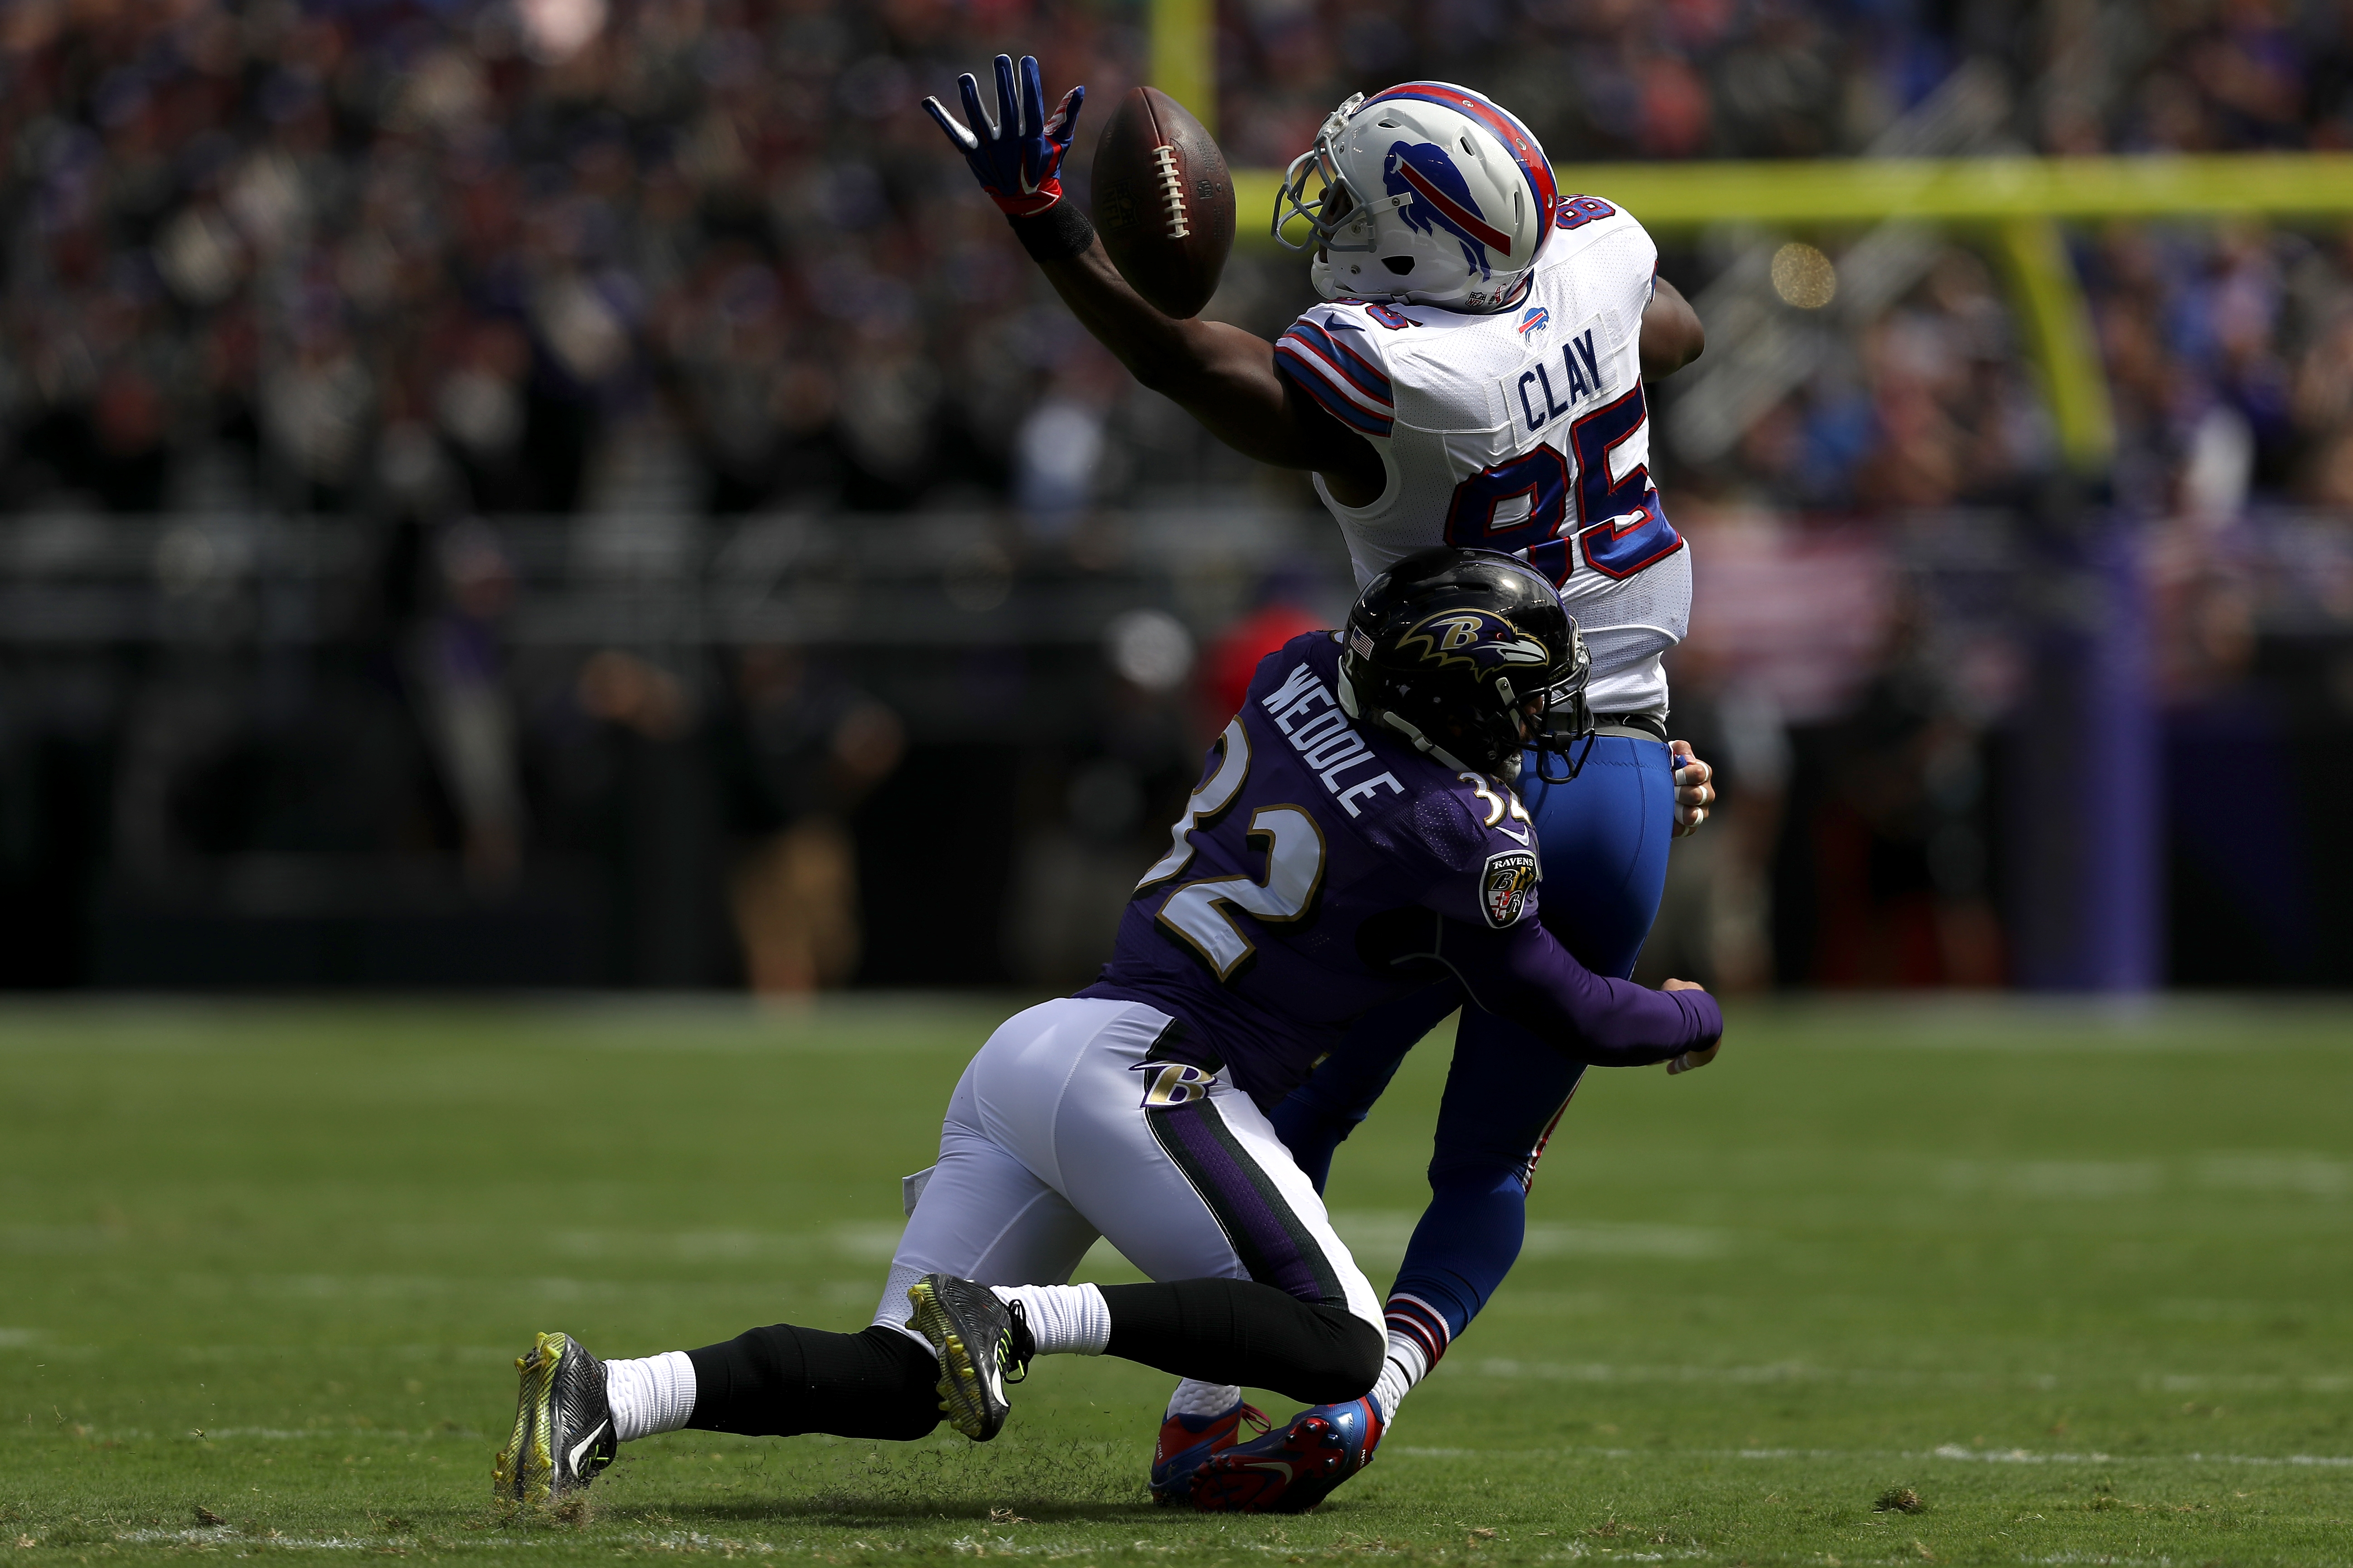 Eric Weddle of Baltimore tackles tight end Charles Clay as he attempts to catch the ball in the first half.